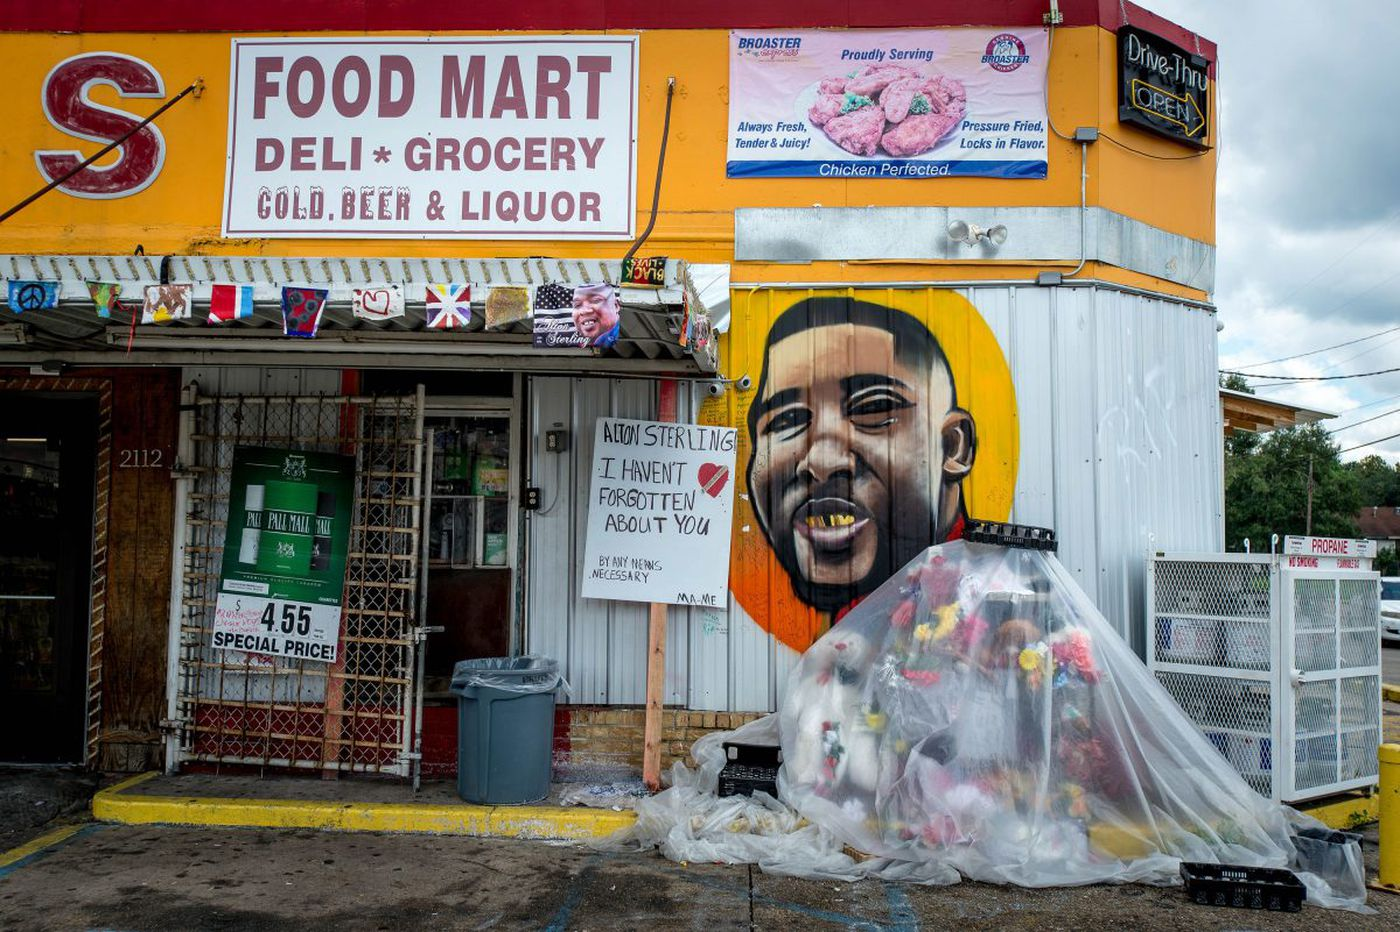 Alton Sterling's black life didn't matter to police or an attorney general | Solomon Jones